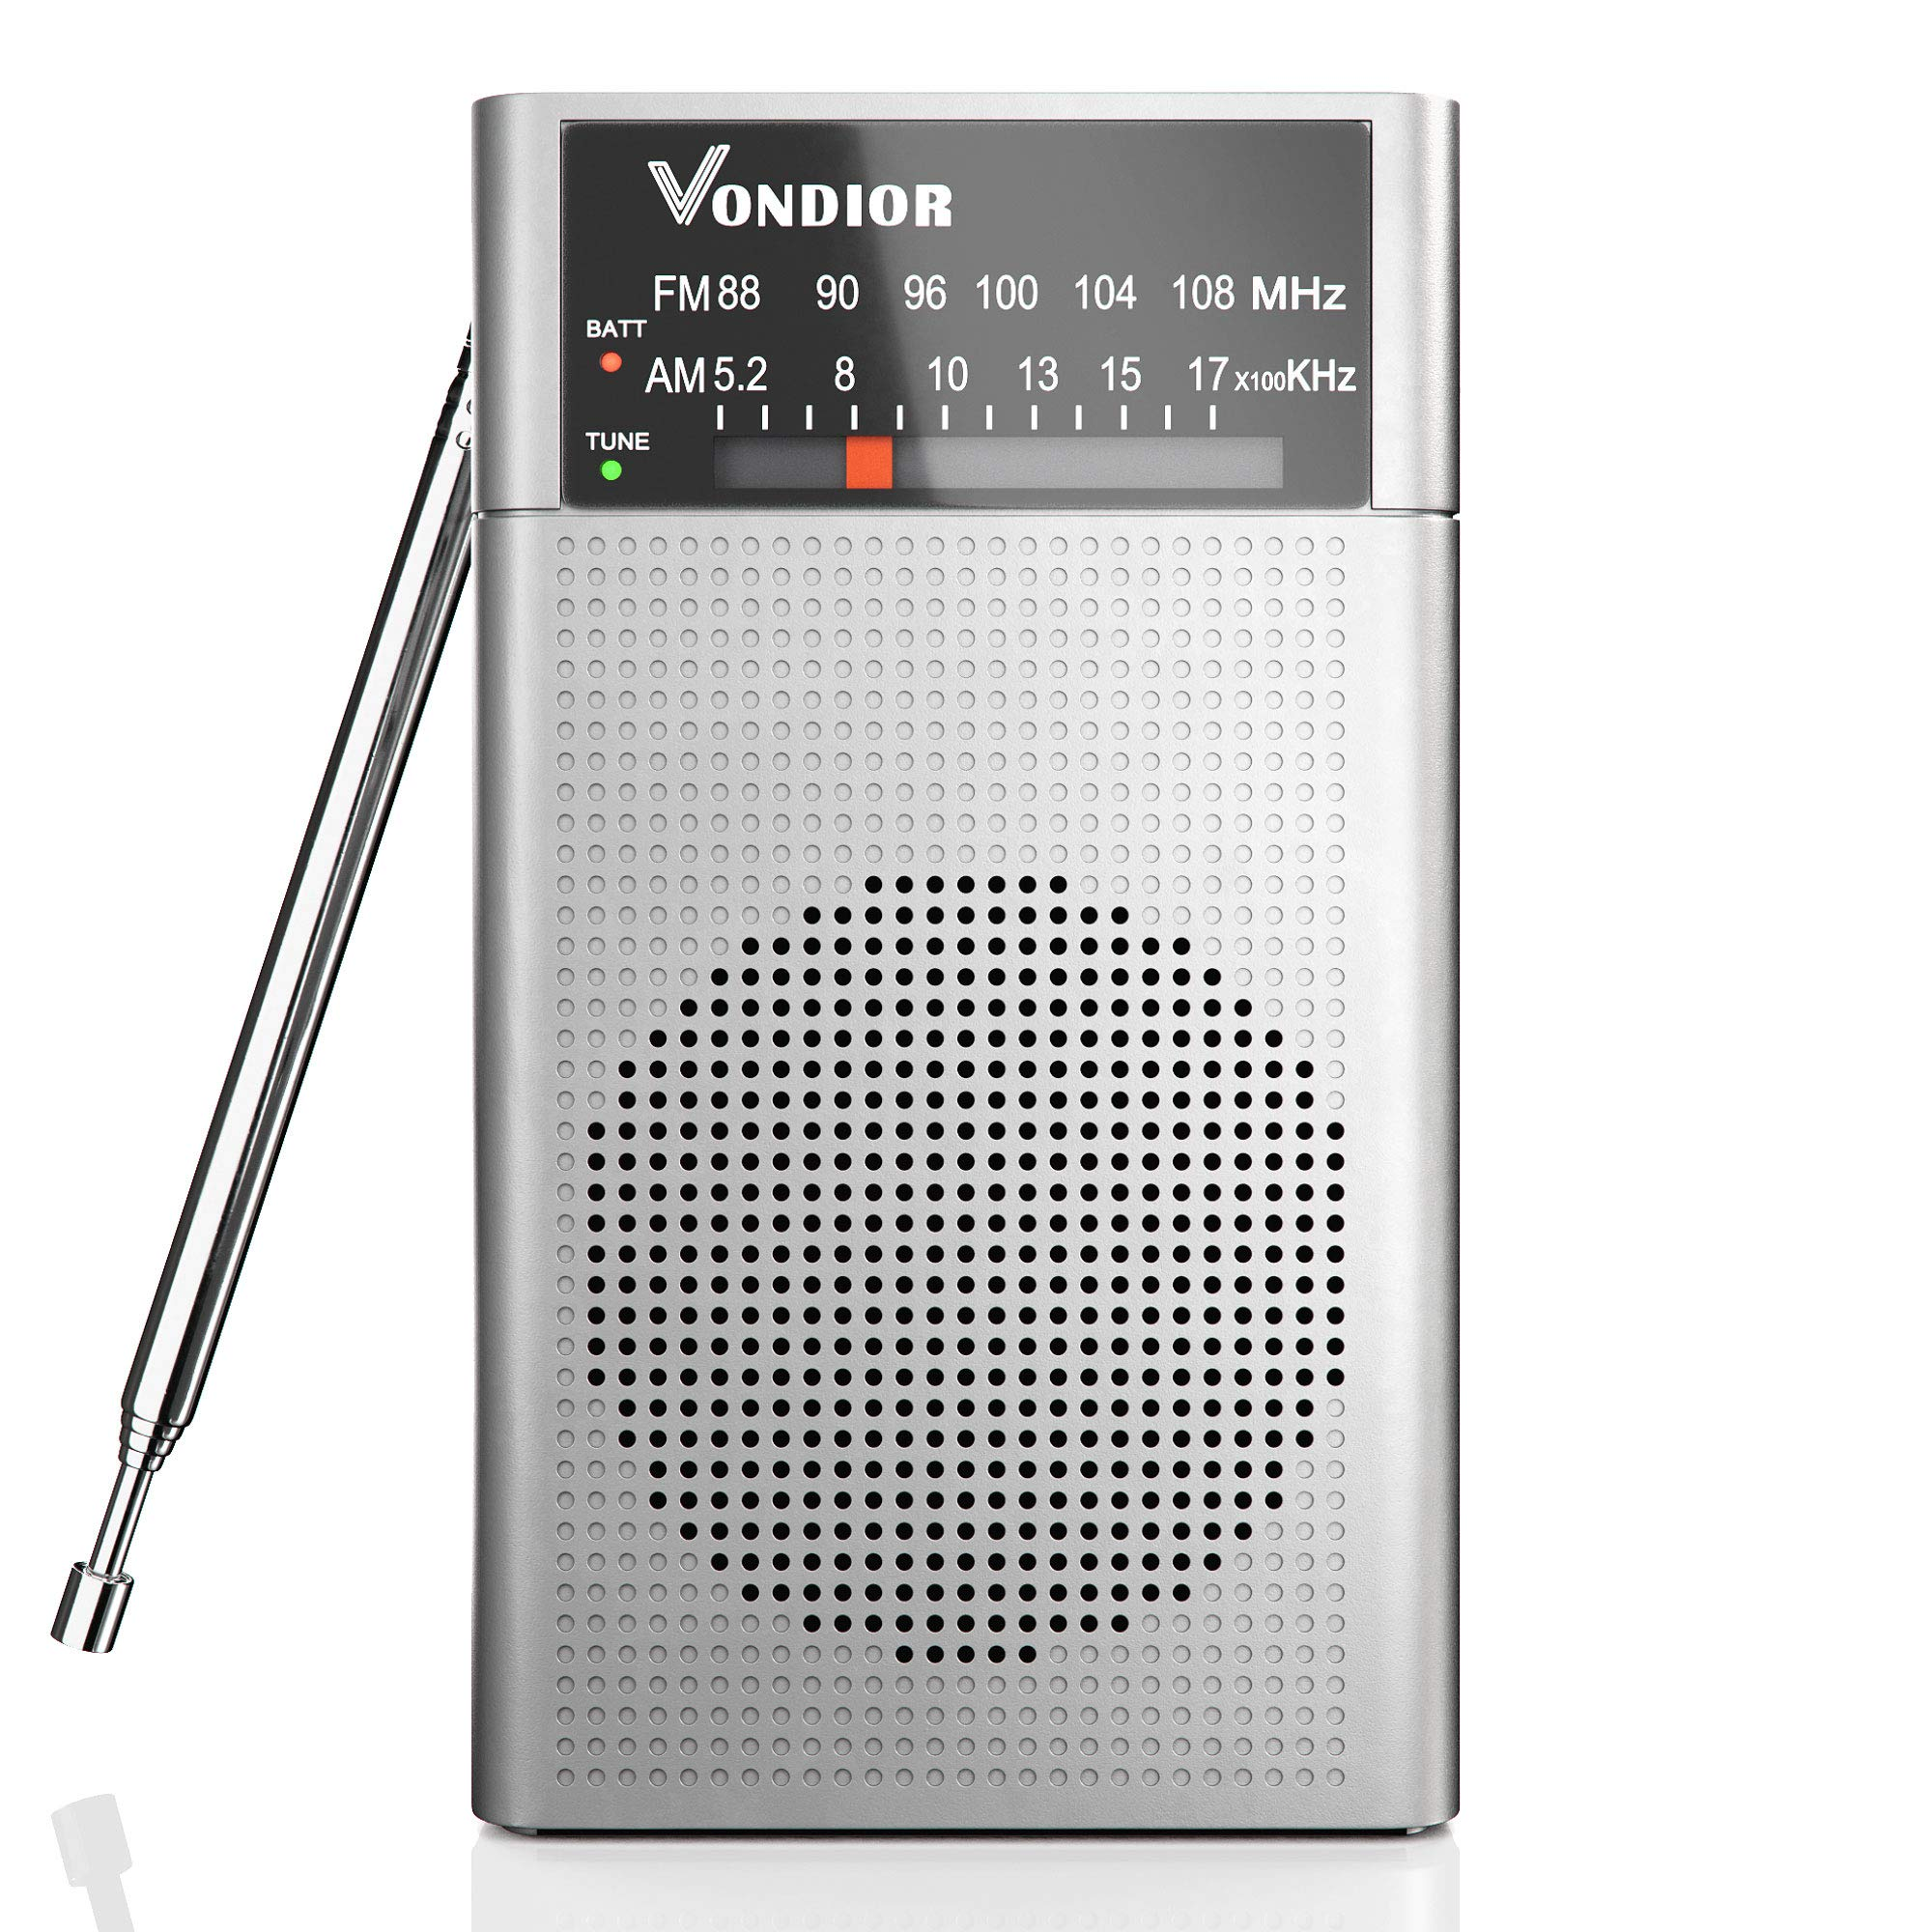 Transistor Radios Portable Battery Operated - Best Reception and Longest Lasting. AM FM Radio Operated by 2 AA Battery, Mono Headphone Socket, by Vondior (Silver)